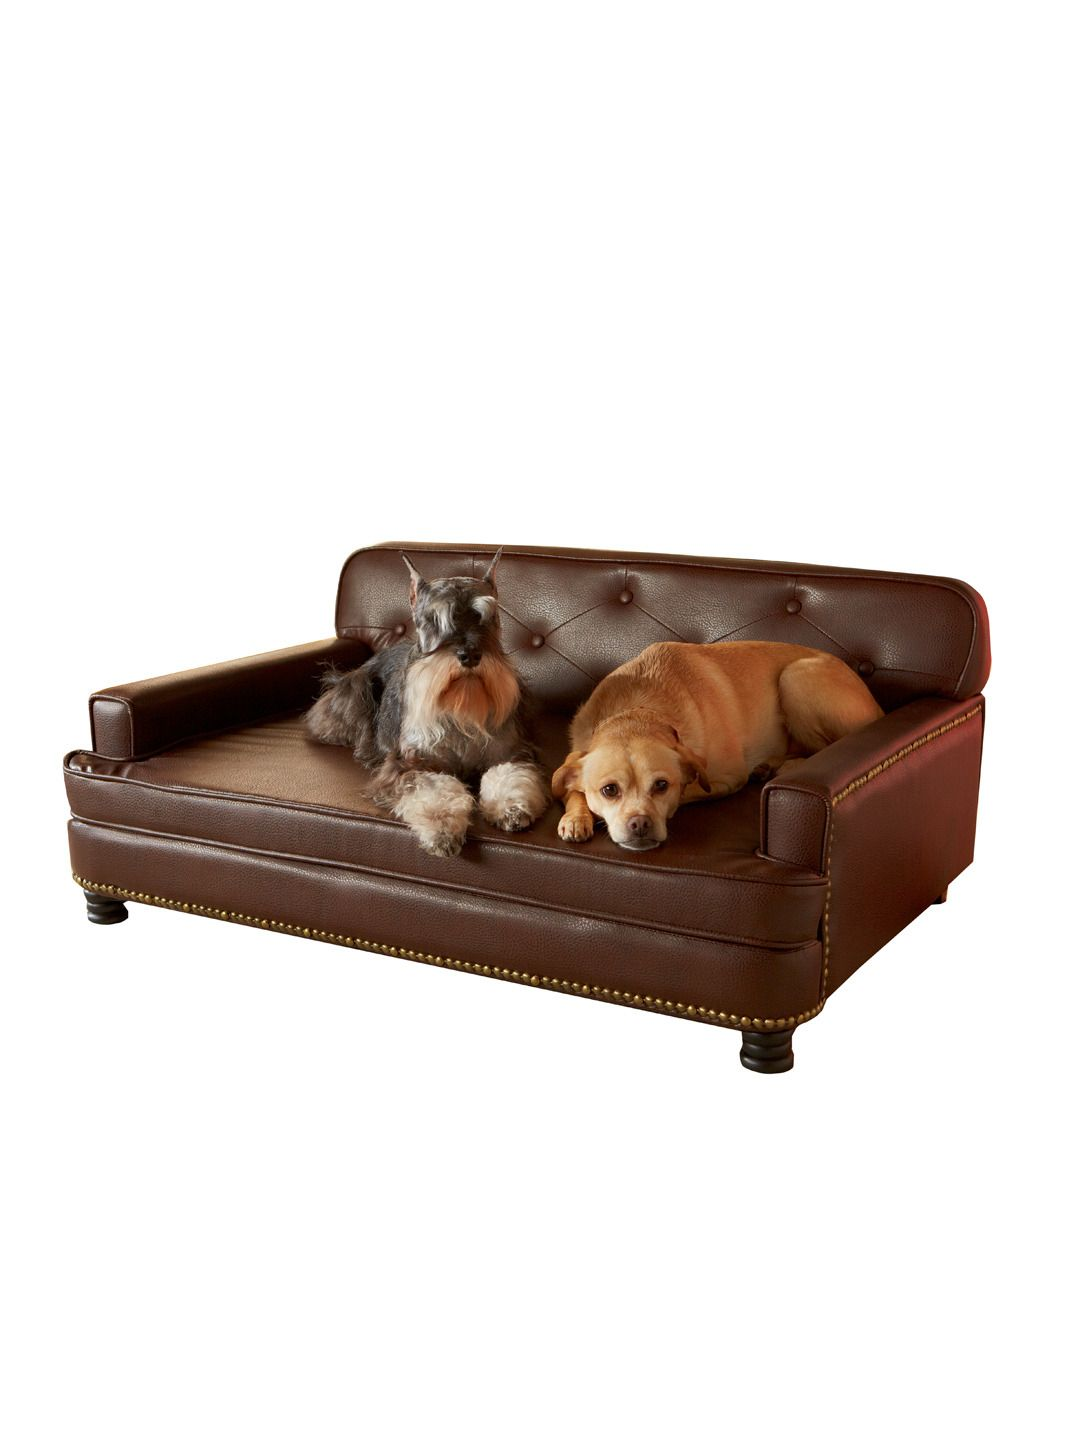 Library Sofa by Enchanted Home Pet at Gilt Pet sofa bed